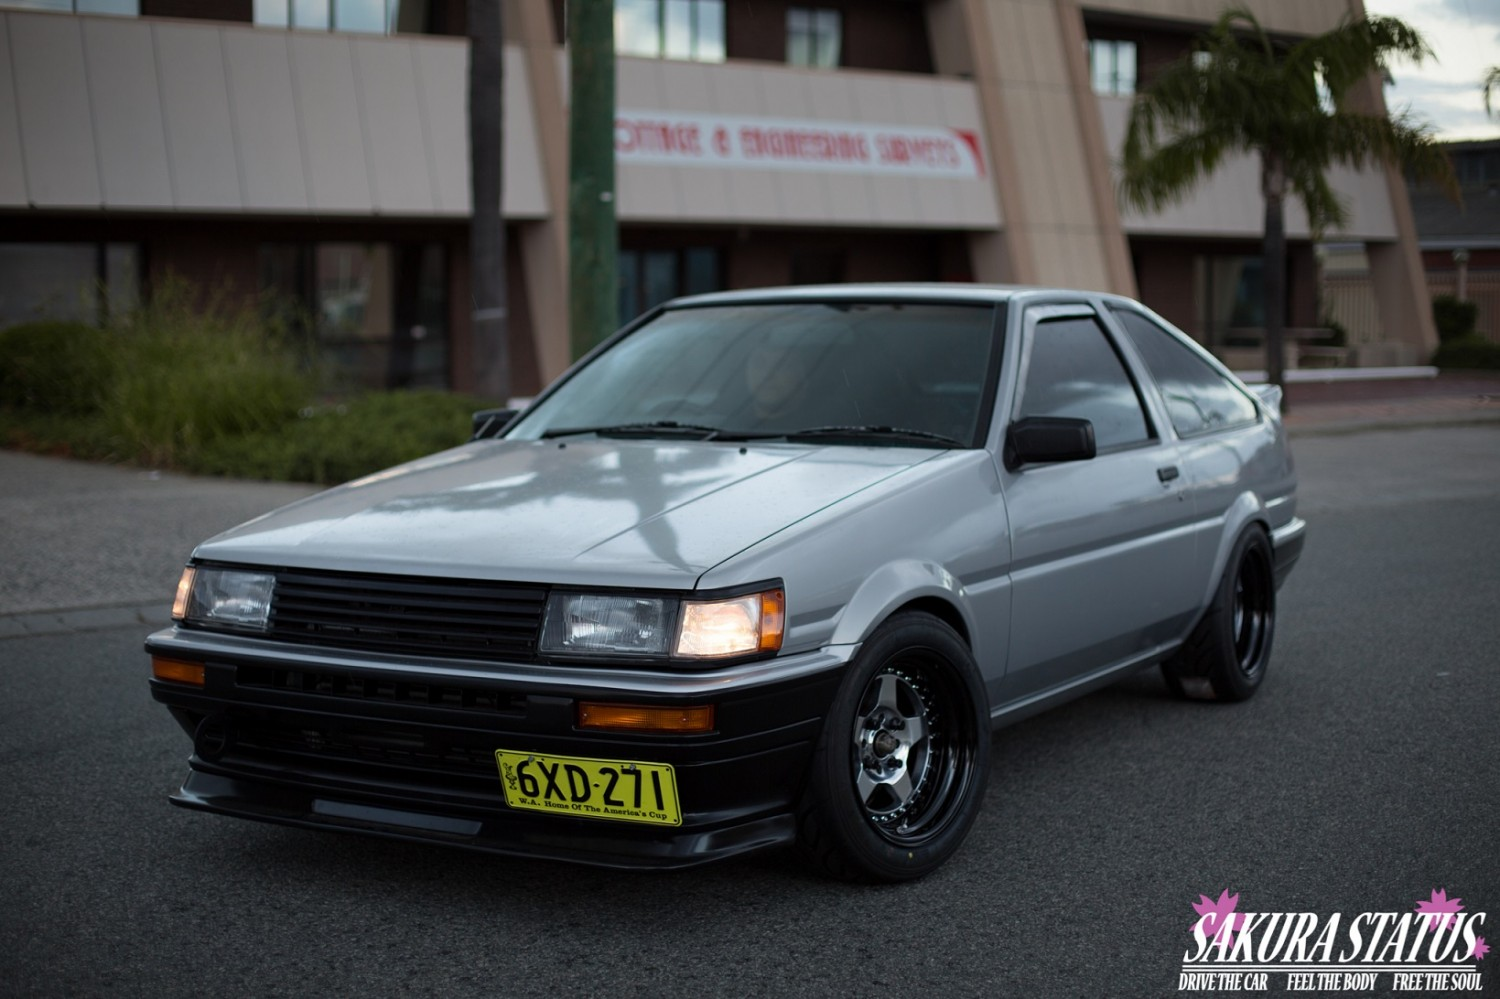 1983 Toyota AE86 - AaronGrant - Shannons Club